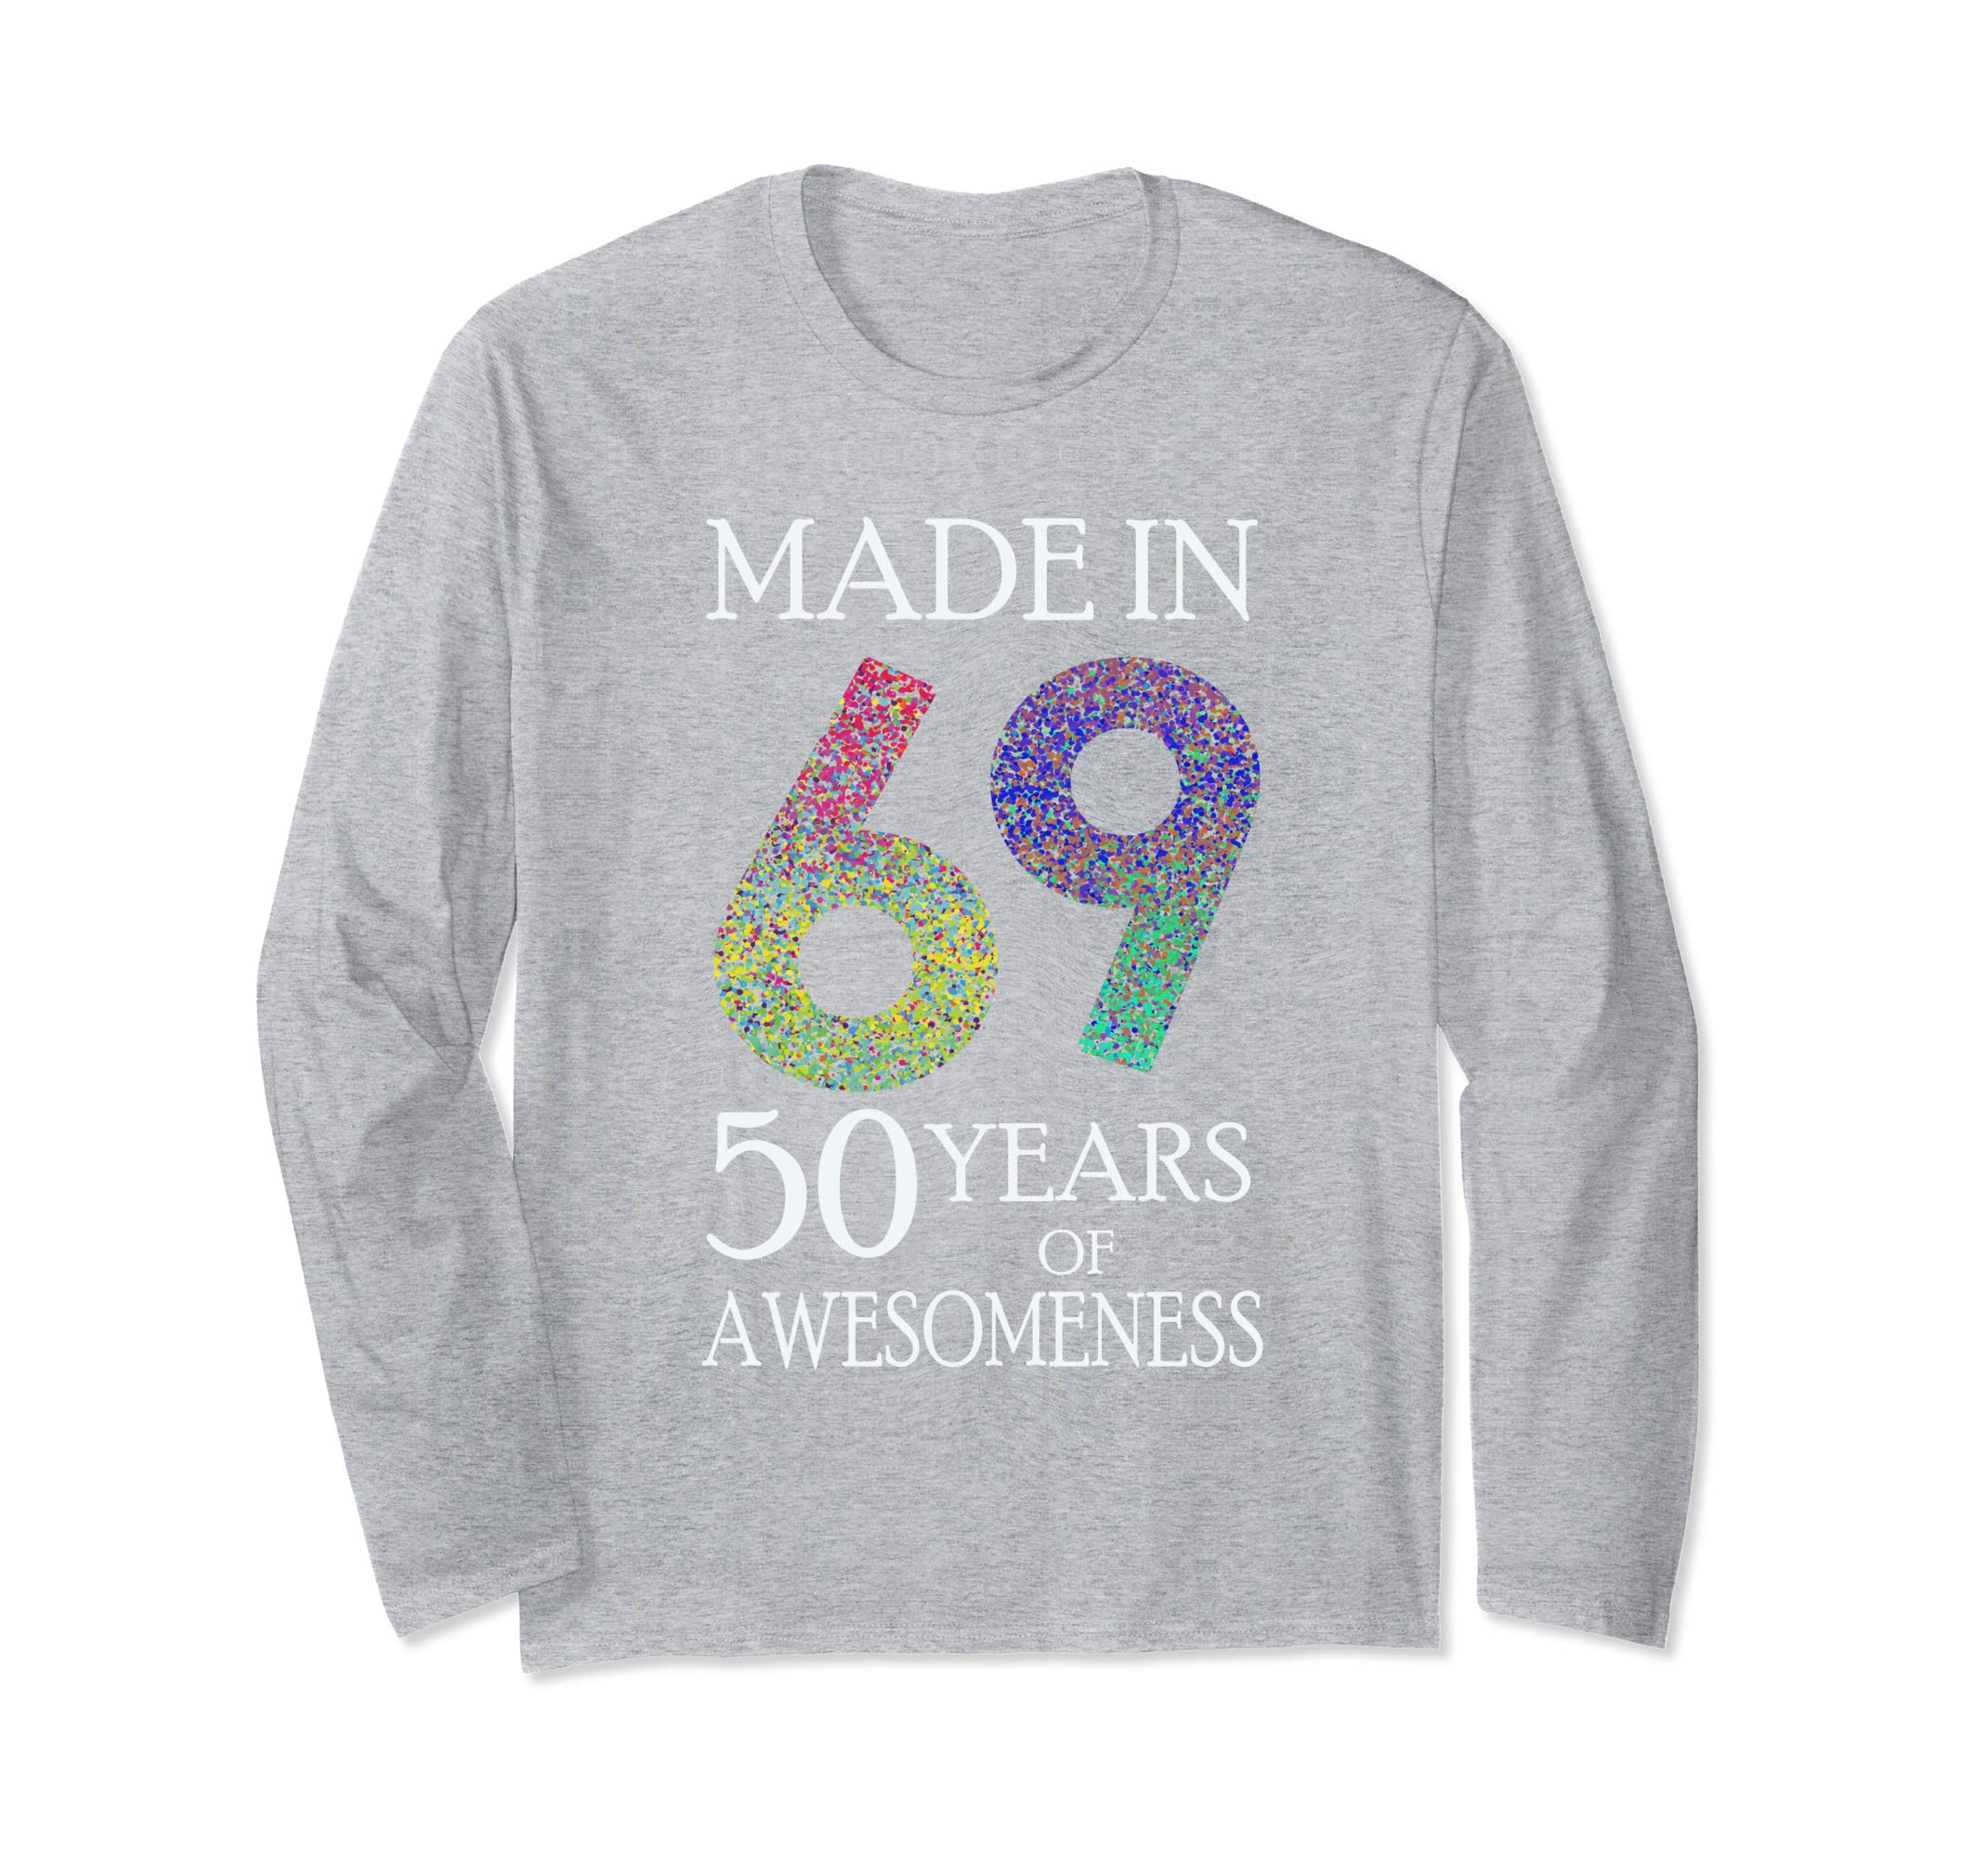 Made in 69 50 years Awesomeness 50th Birthday Gifts Vintage-Teehay